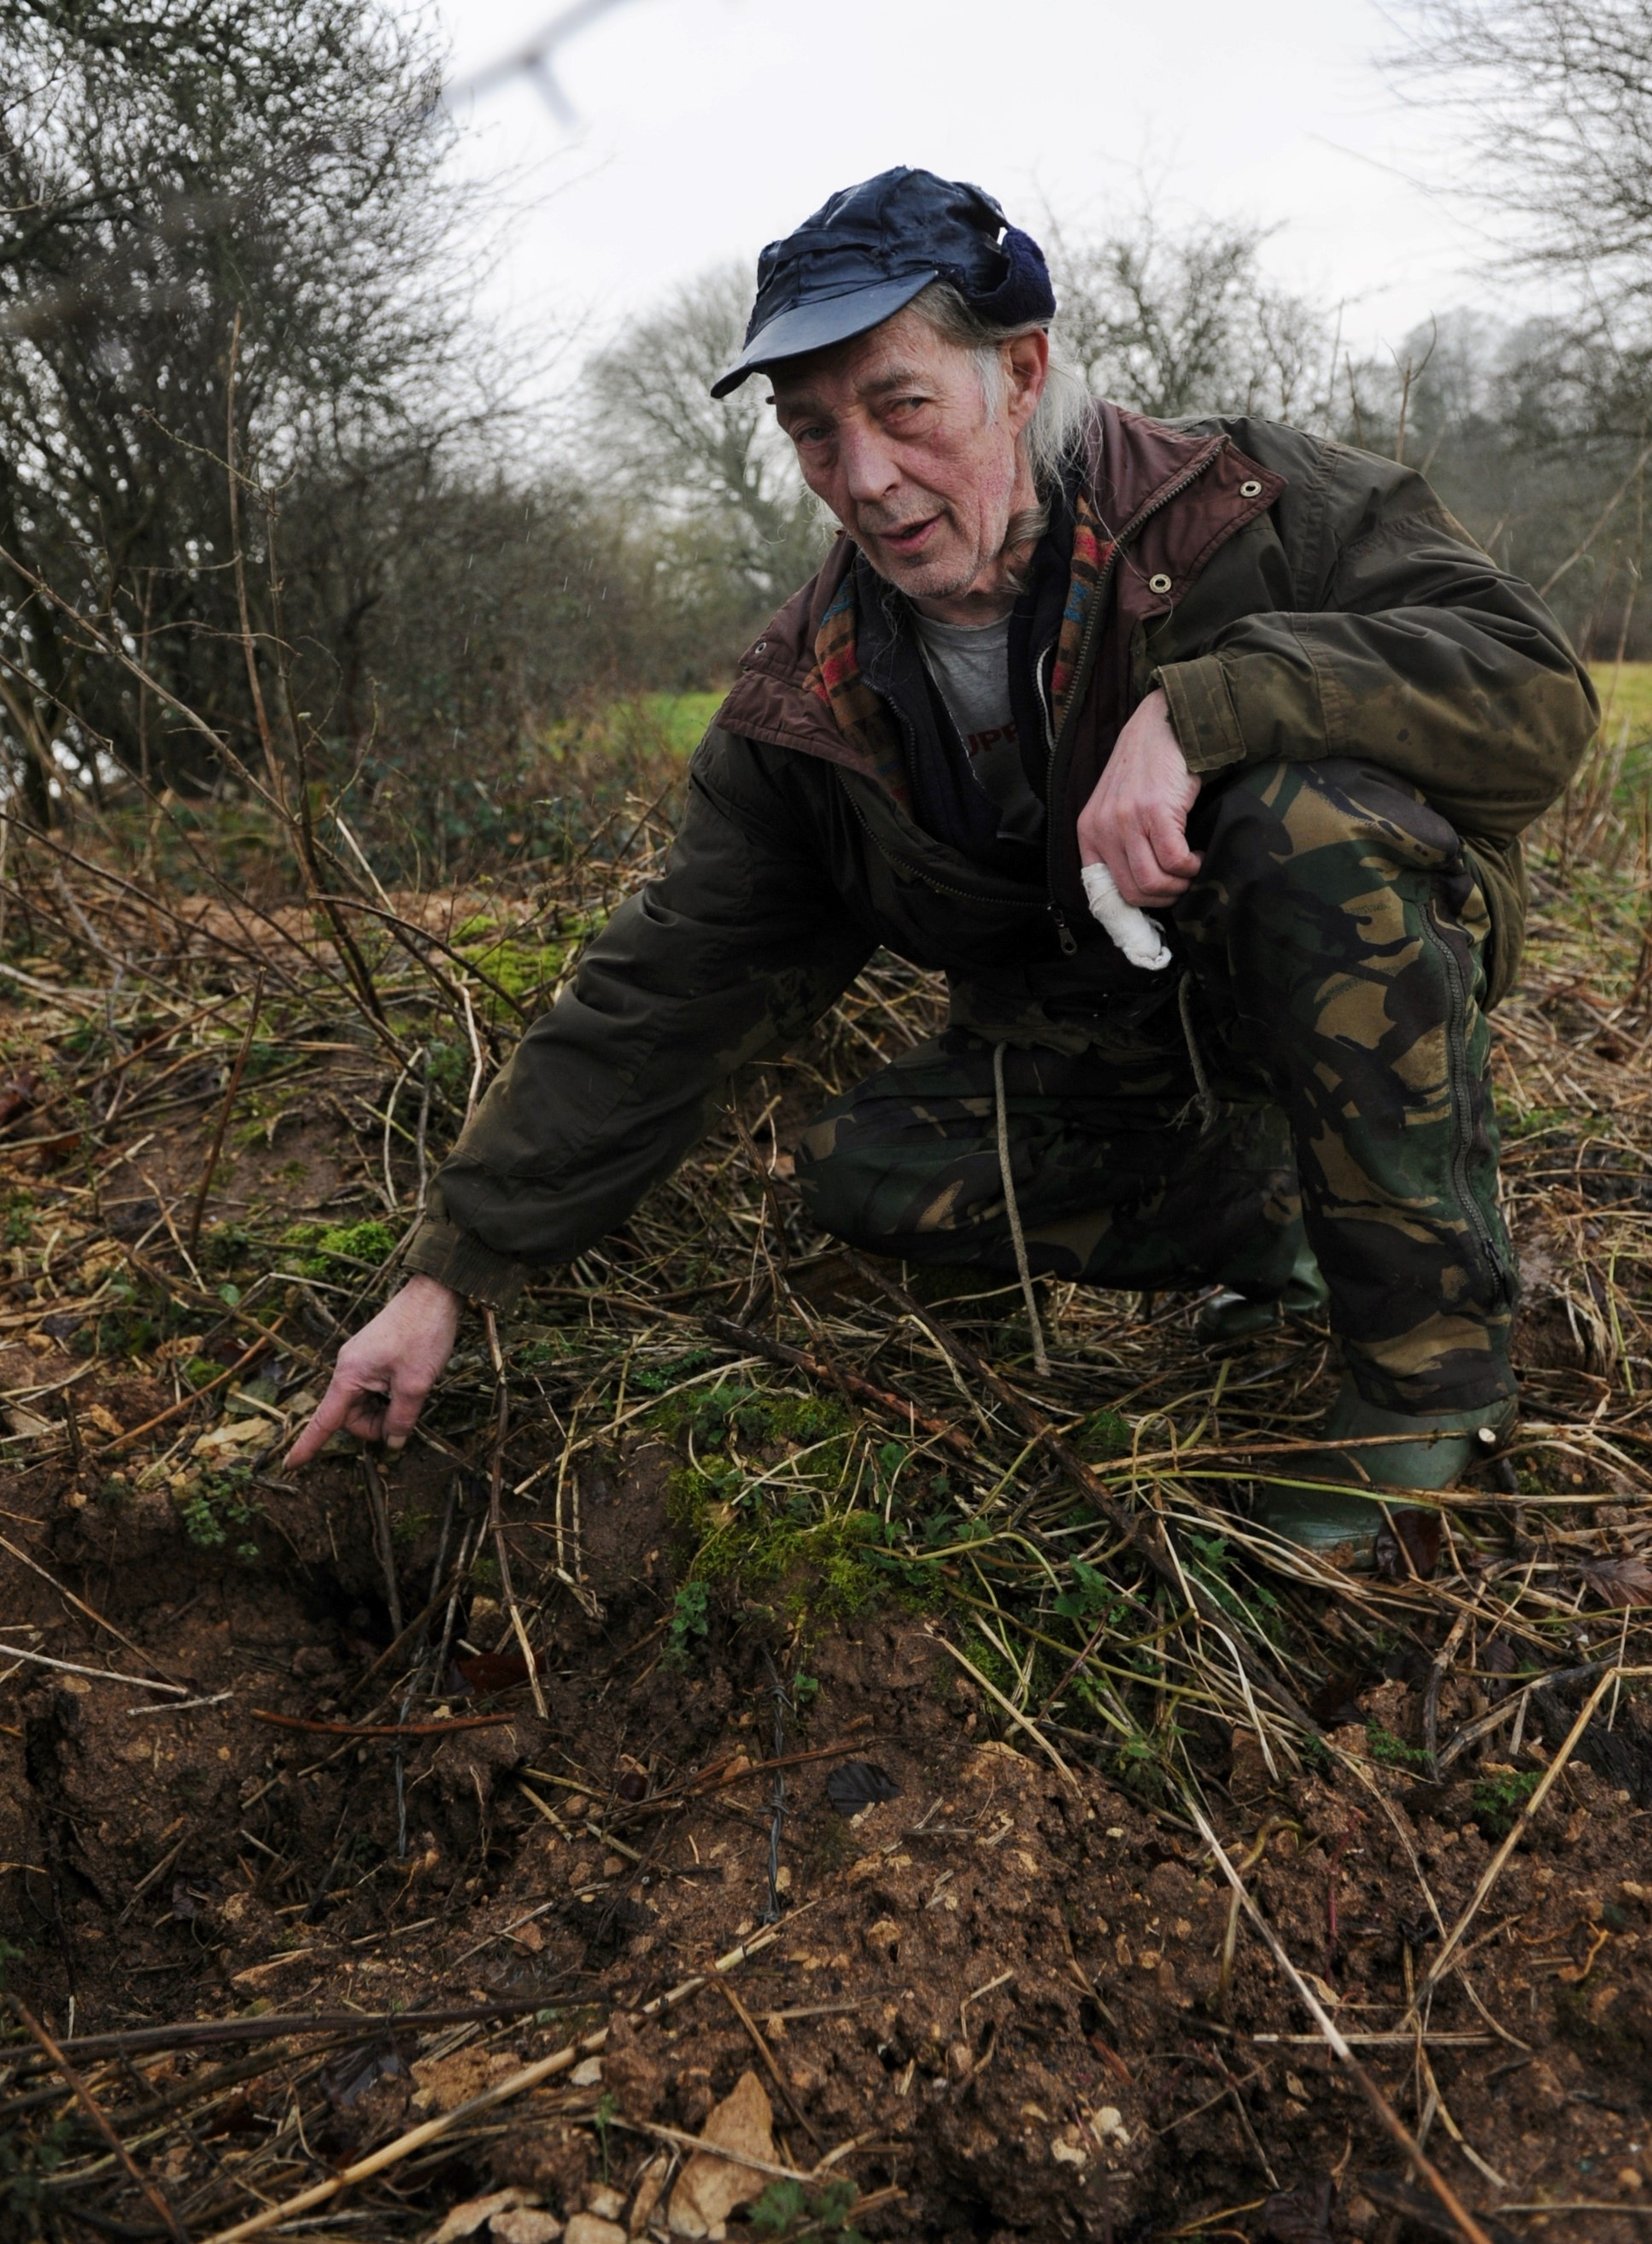 Mike Haines by the filled in badger setts